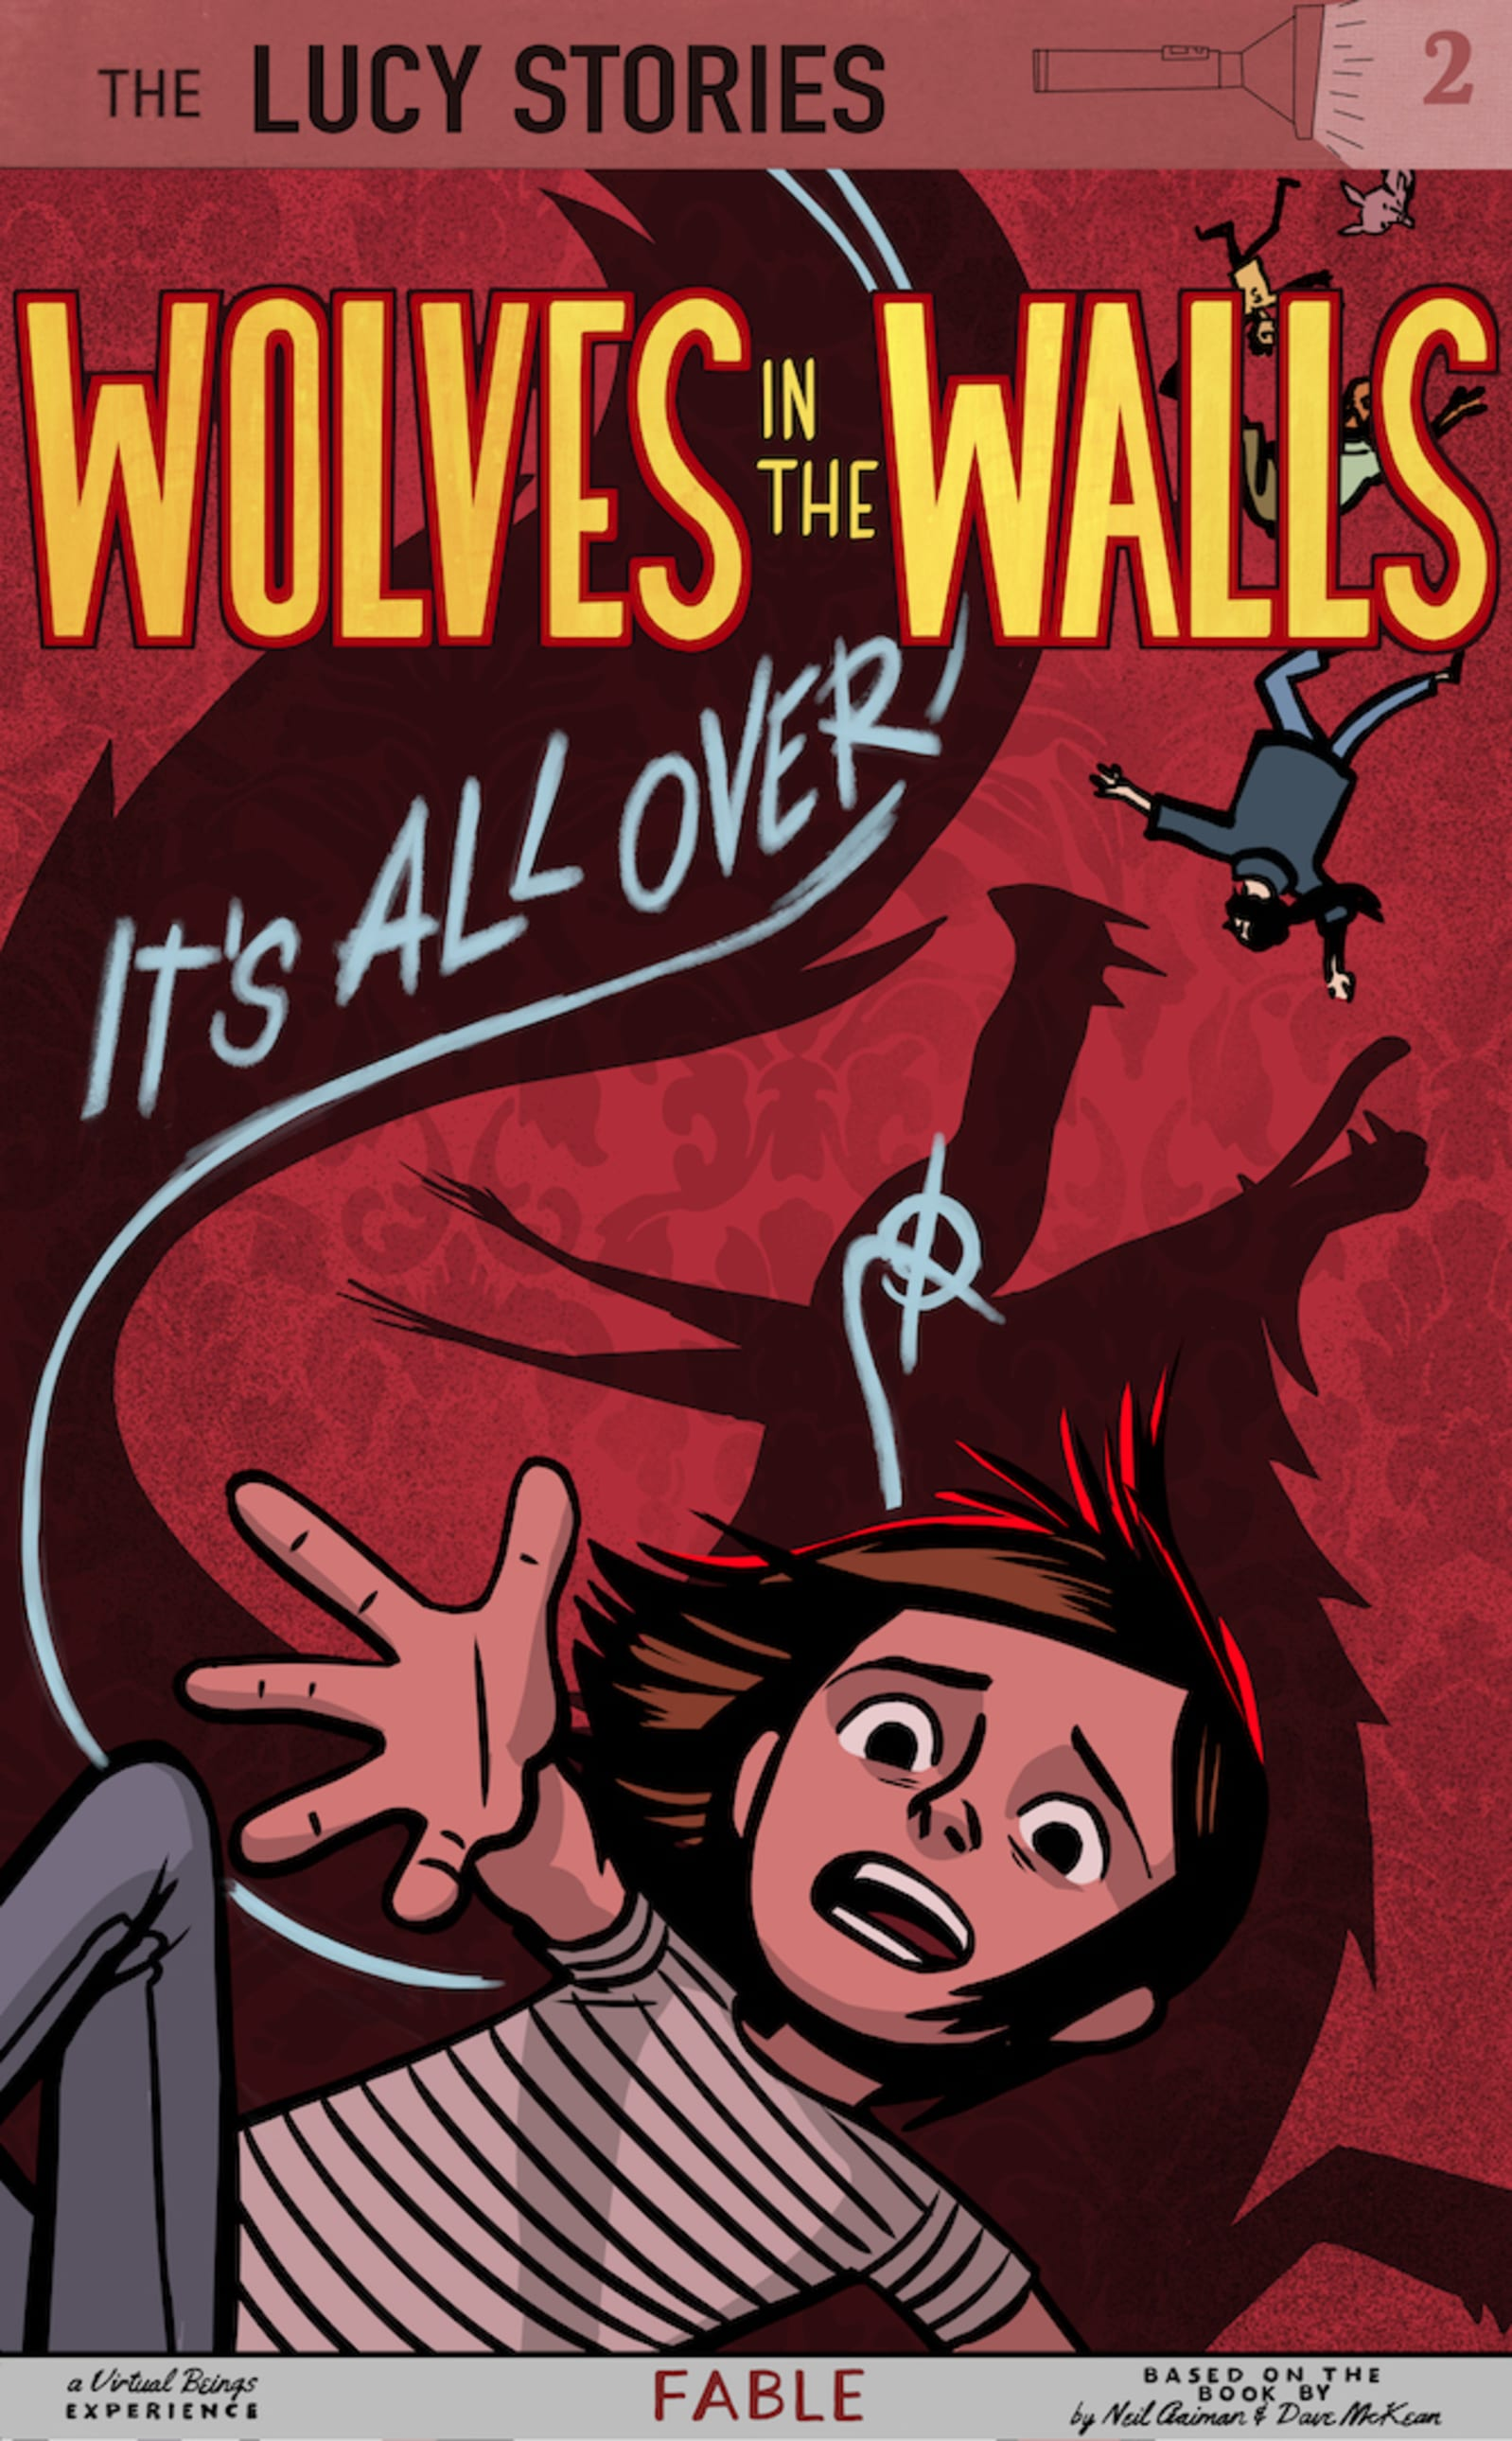 Lucy Wolves in the Walls